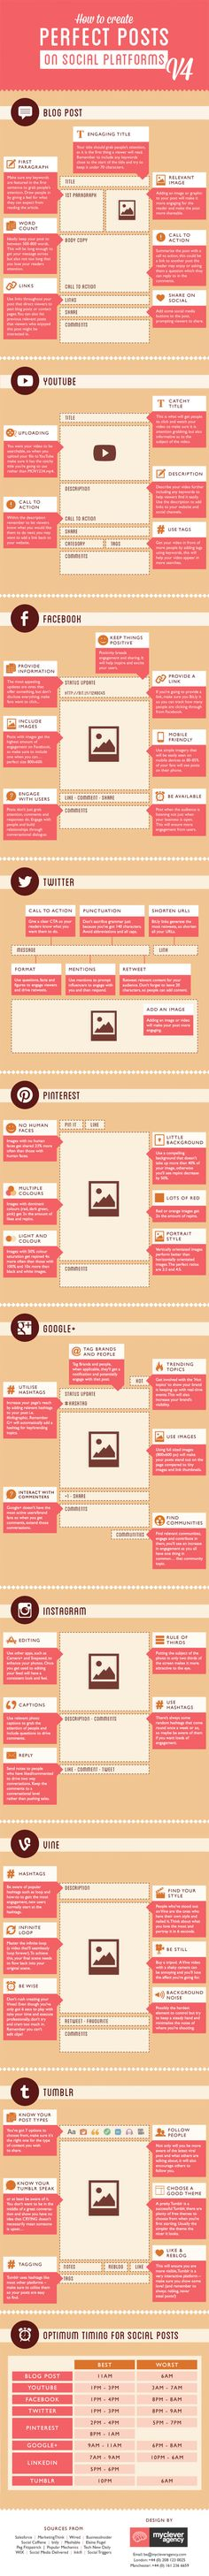 How to Craft the Perfect Social Post Infographic